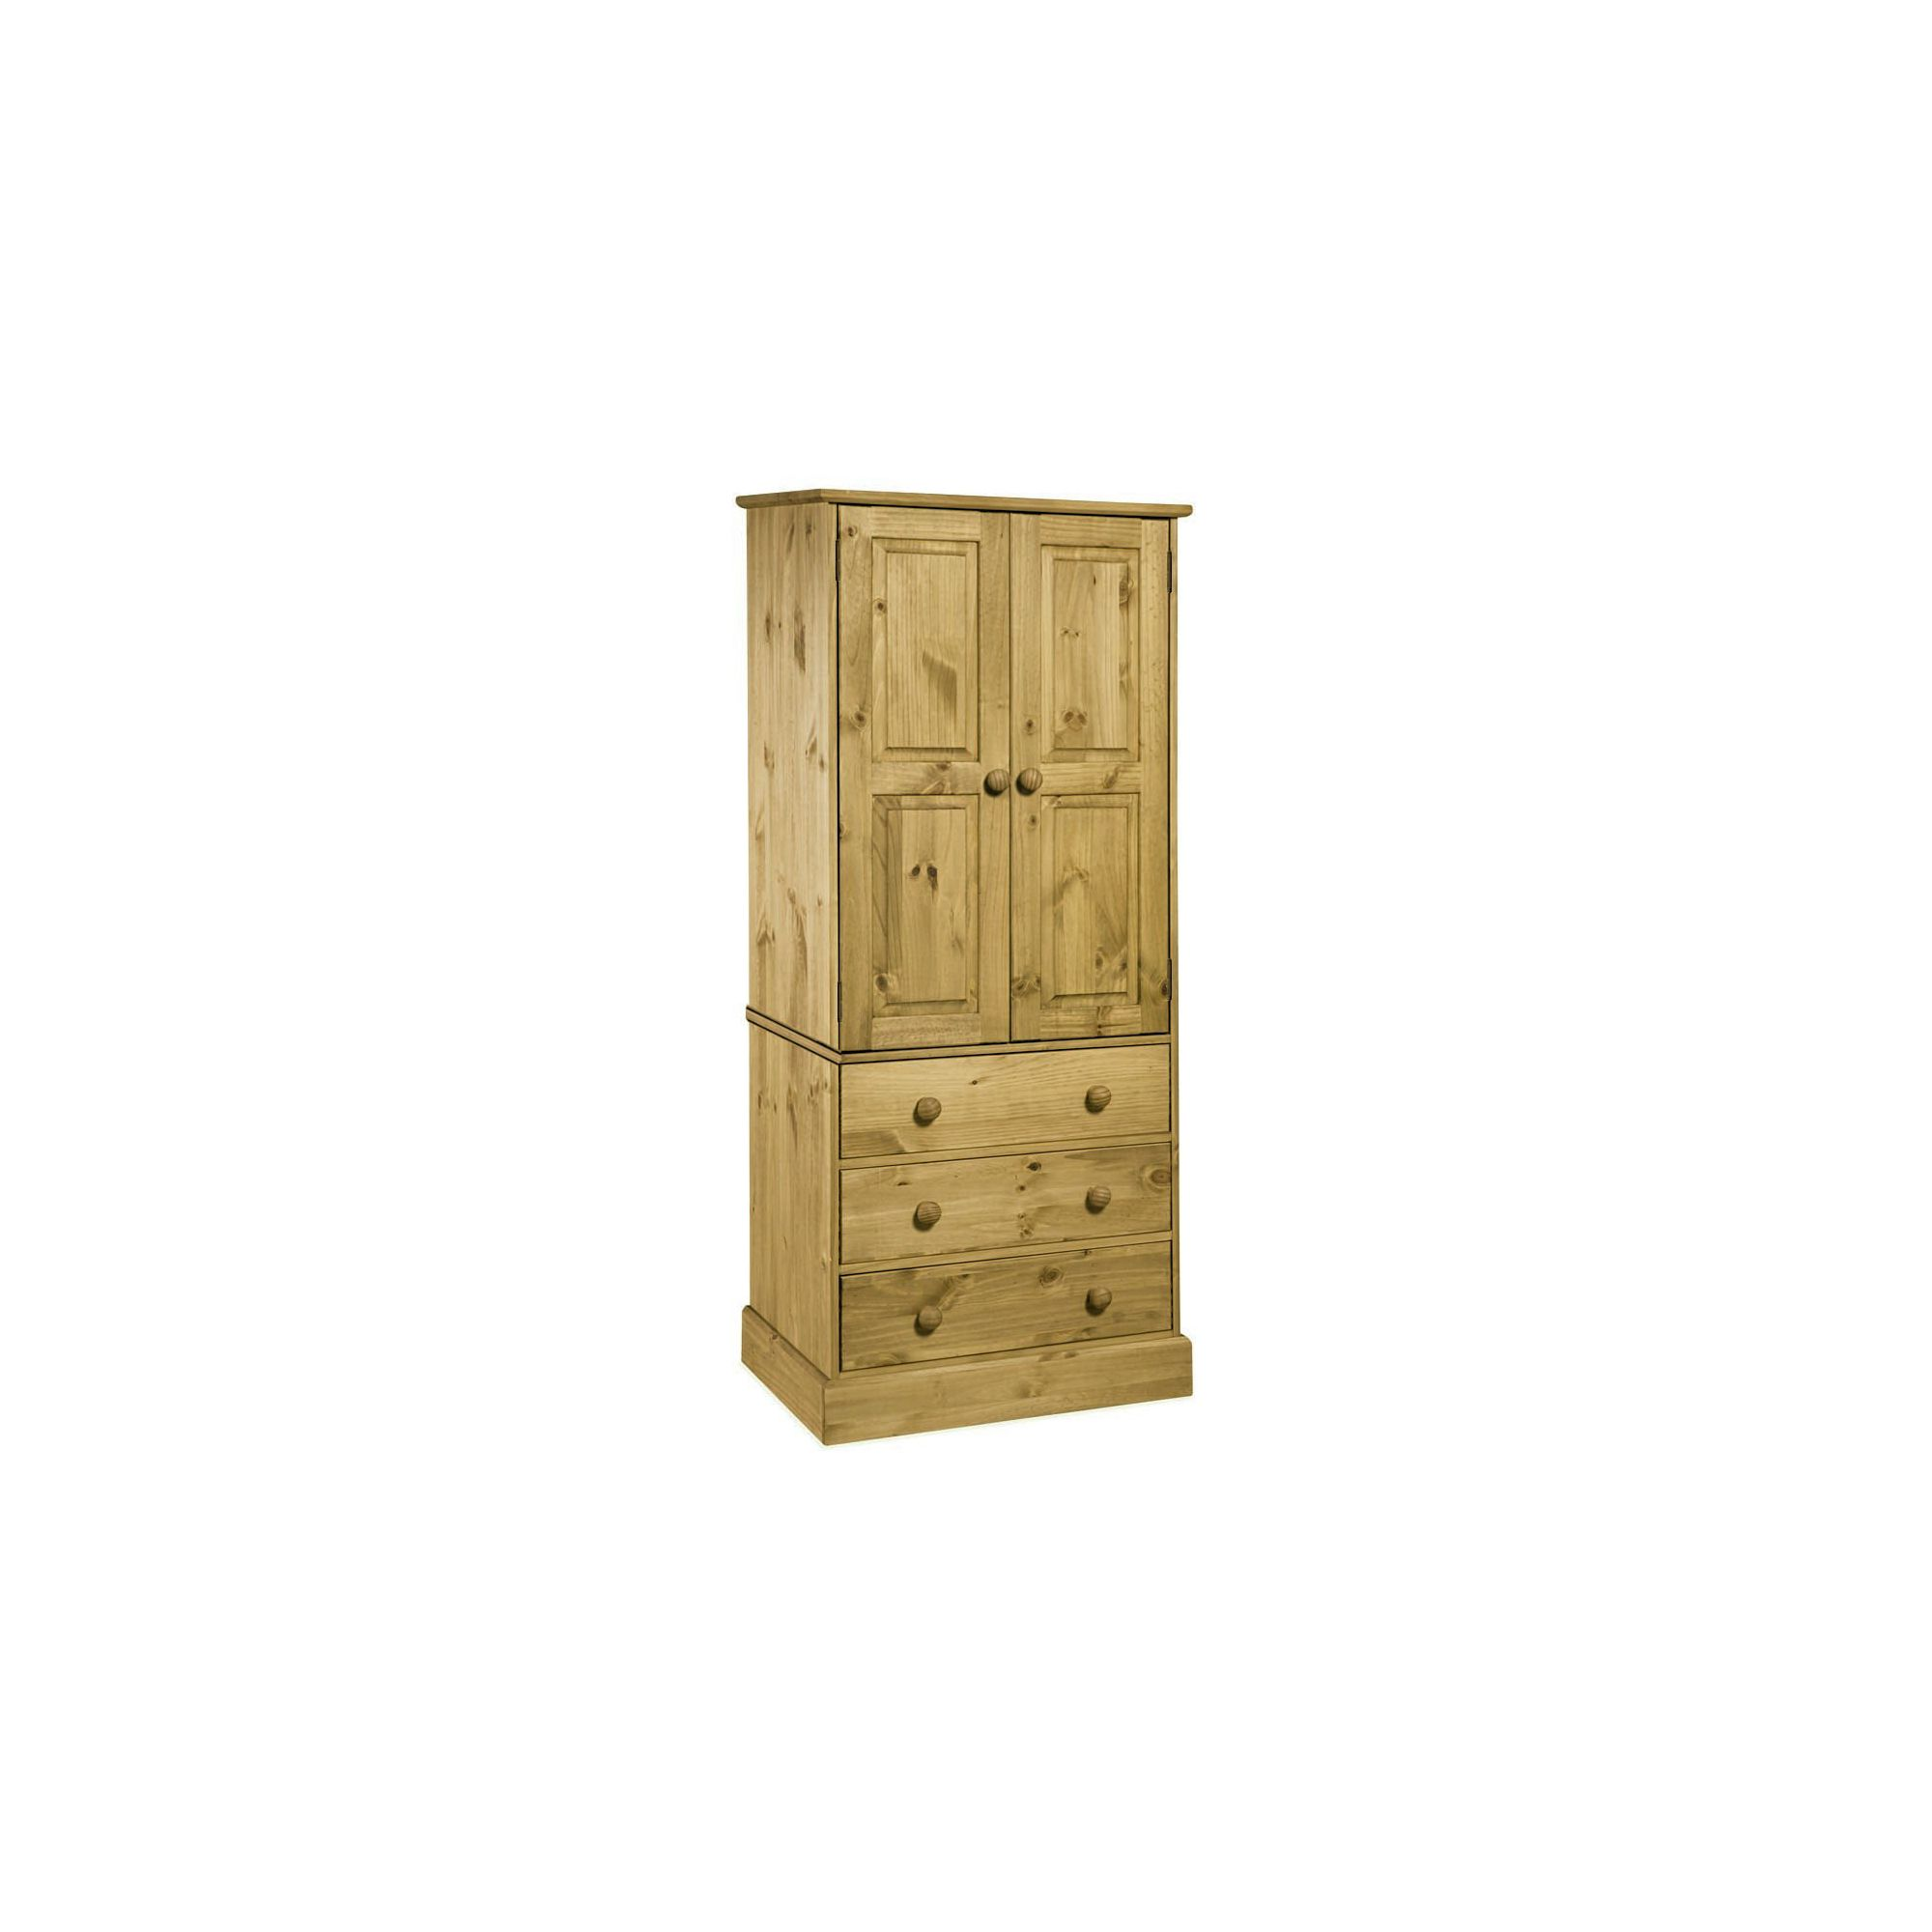 Home Essence Warwick 3 Drawer Wardrobe in Solid Pine at Tesco Direct